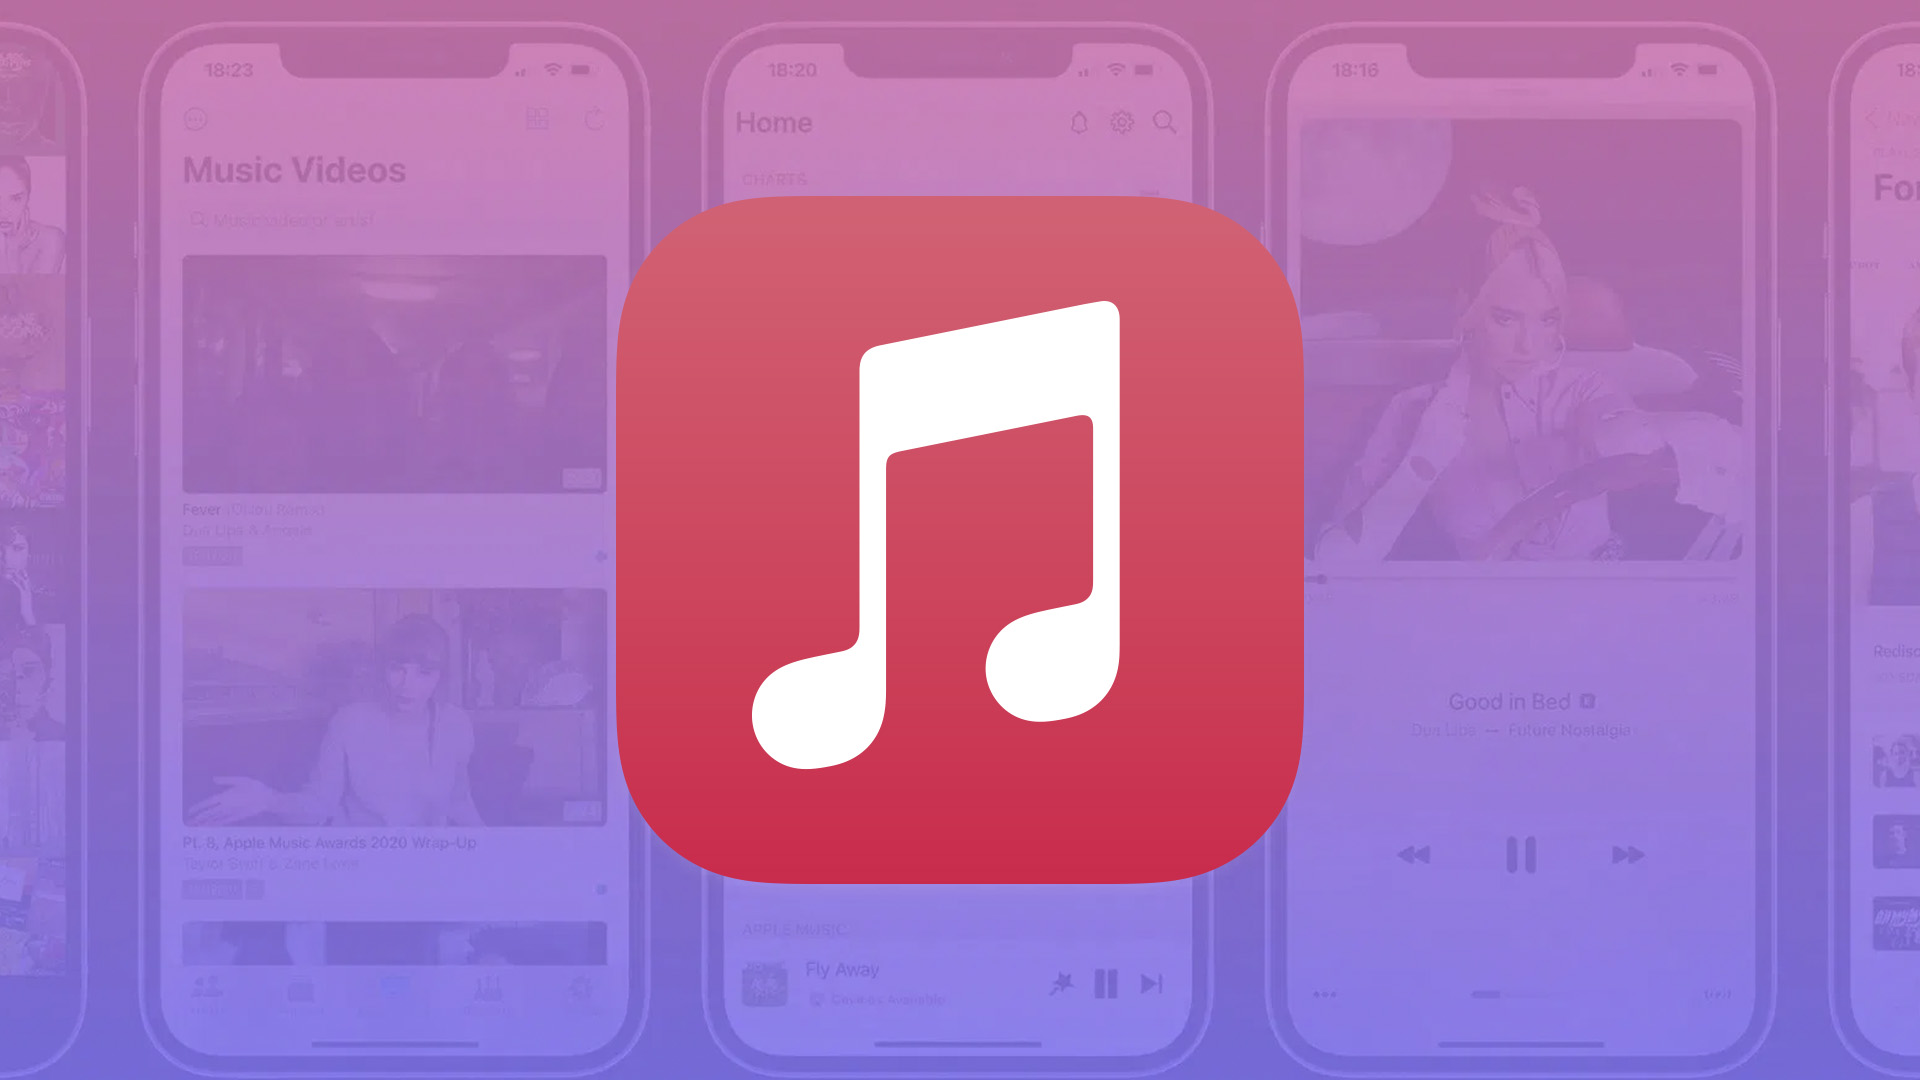 Apple Music says it pays one cent per stream, roughly twice what Spotify pays